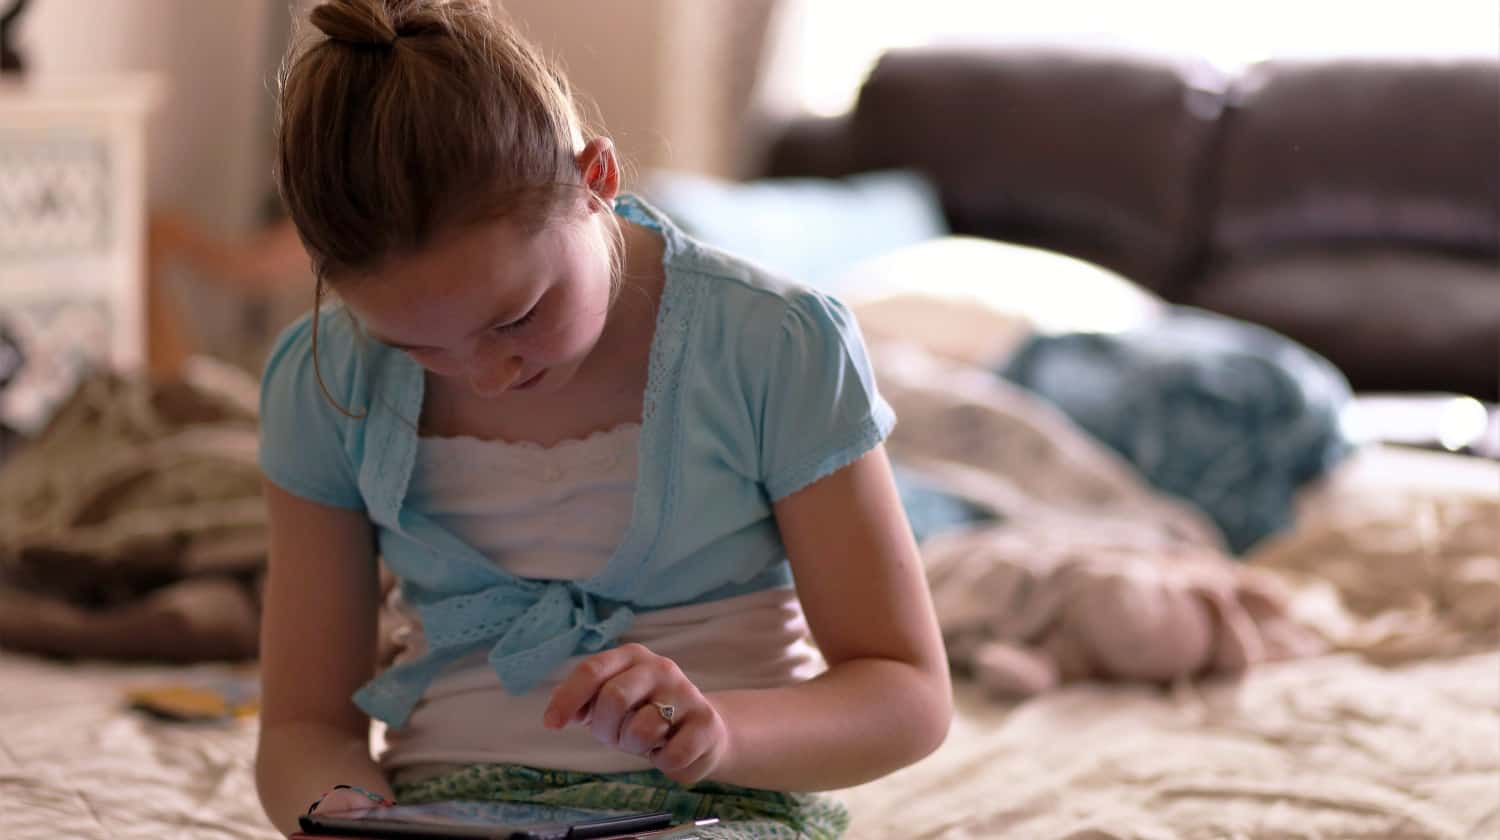 Feature | Girl sitting on bed holding tablet | Best eBooks on Kindle for Kids